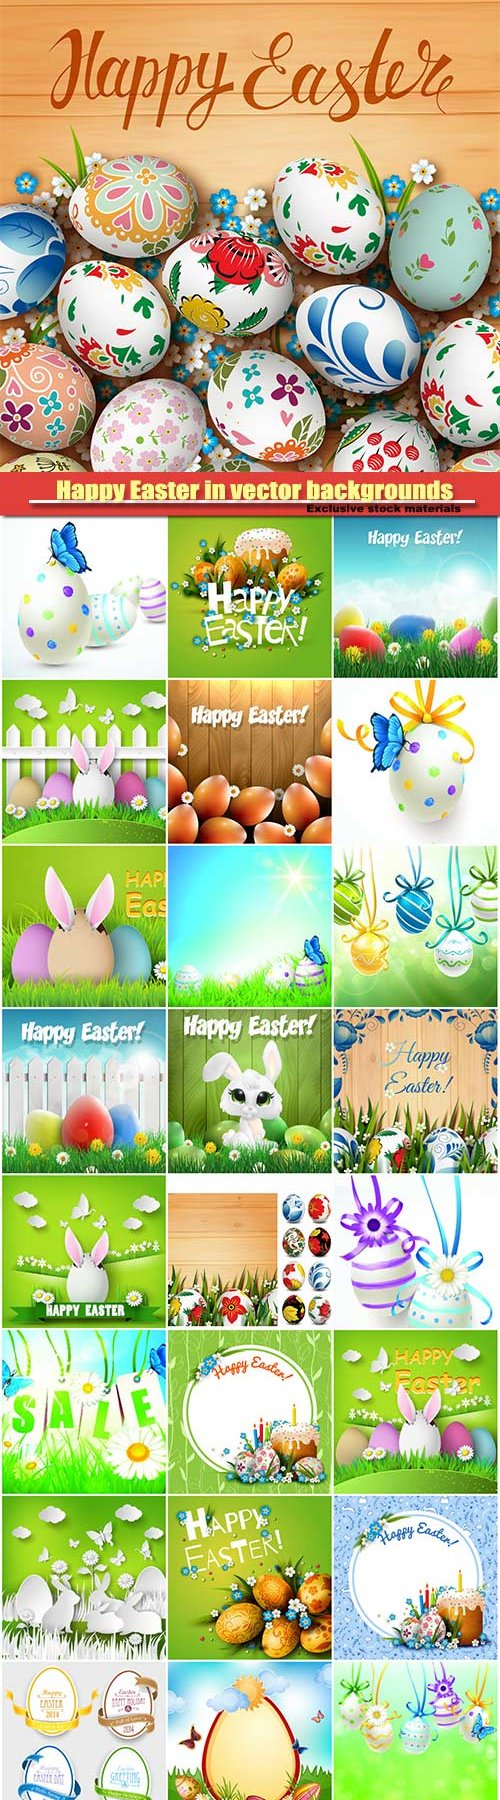 Happy Easter in vector backgrounds